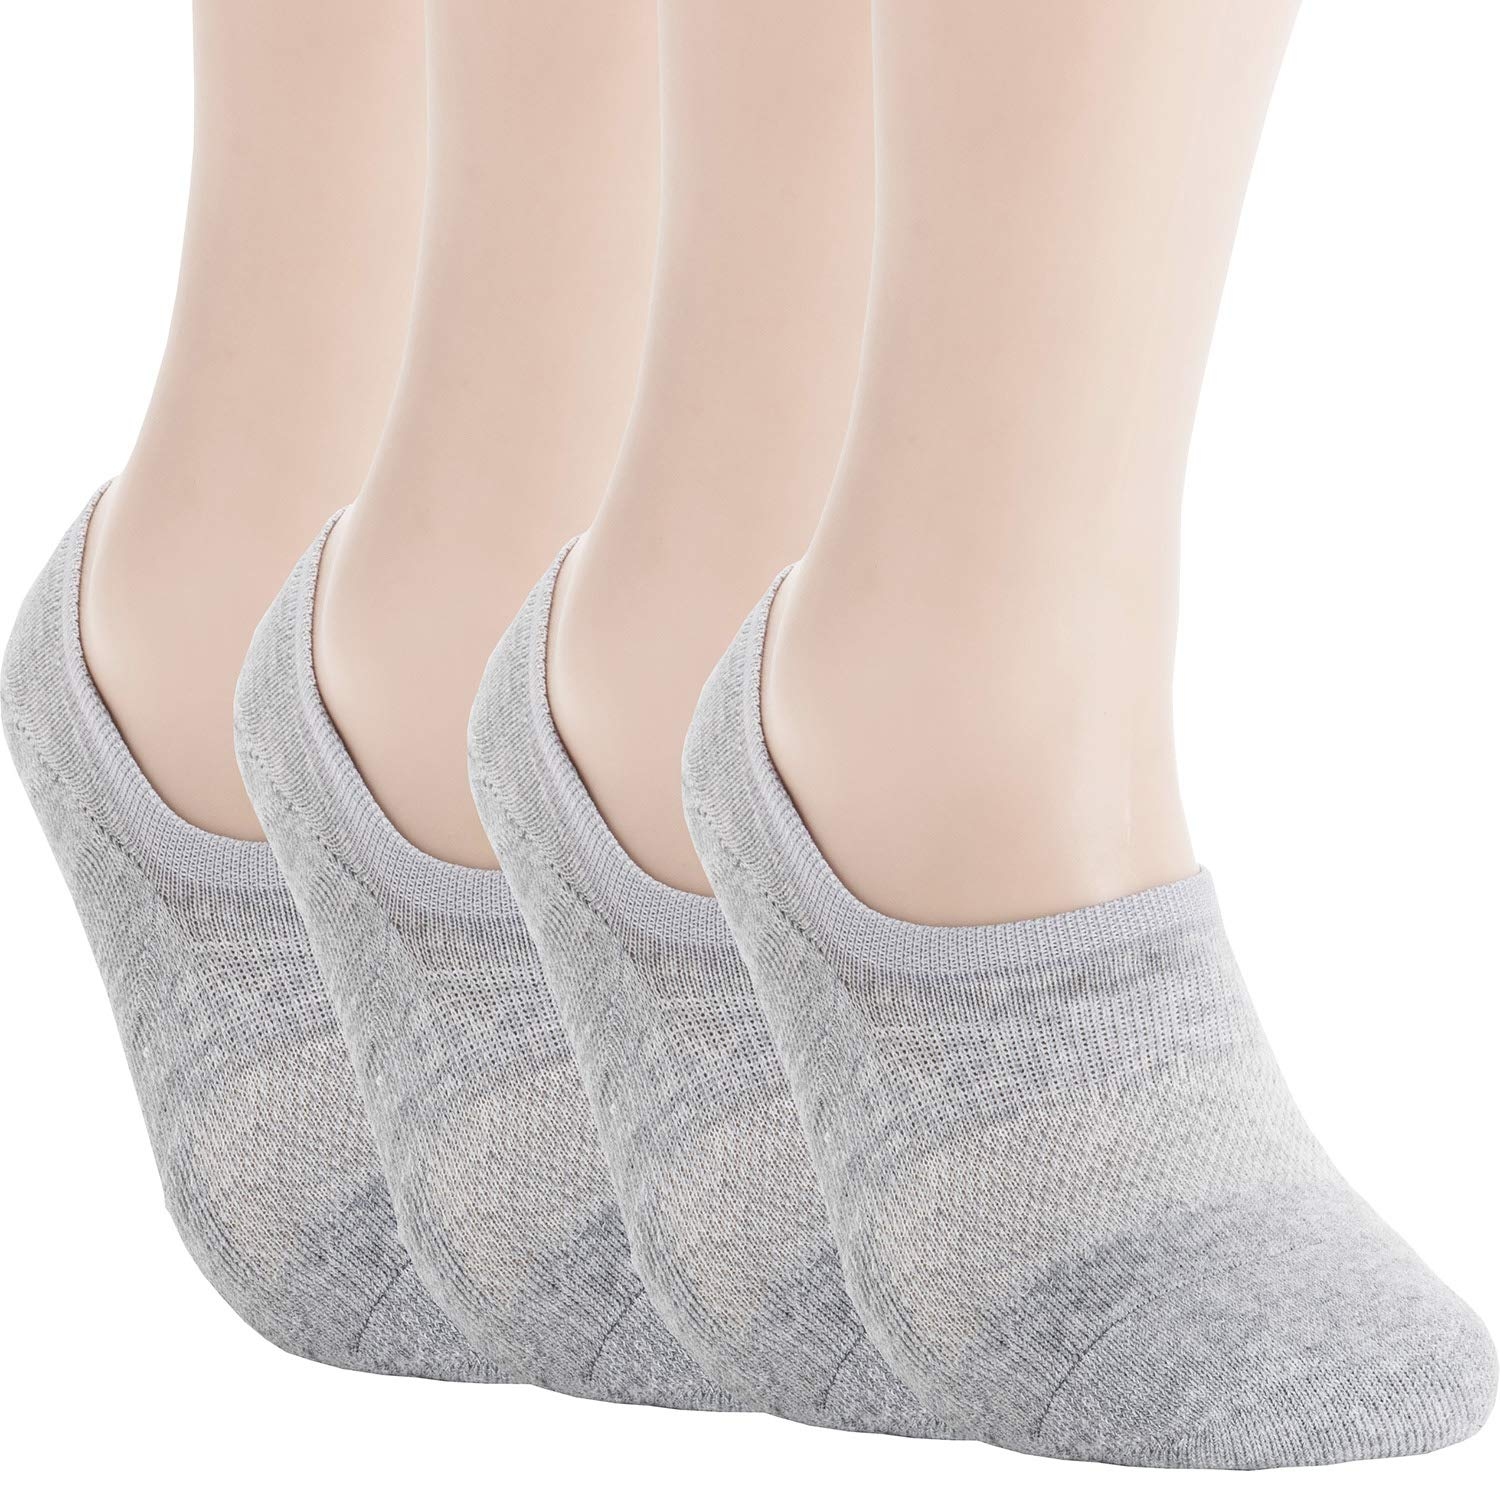 Pro Mountain Unisex No Show Flat Cushion Athletic Cotton Sneakers Sports Socks (M(US Women Shoe 7.5~9.5 = Men 6.5~8.5, size10 Unisex), Gray 4pairs Pack M-size) by Pro Mountain